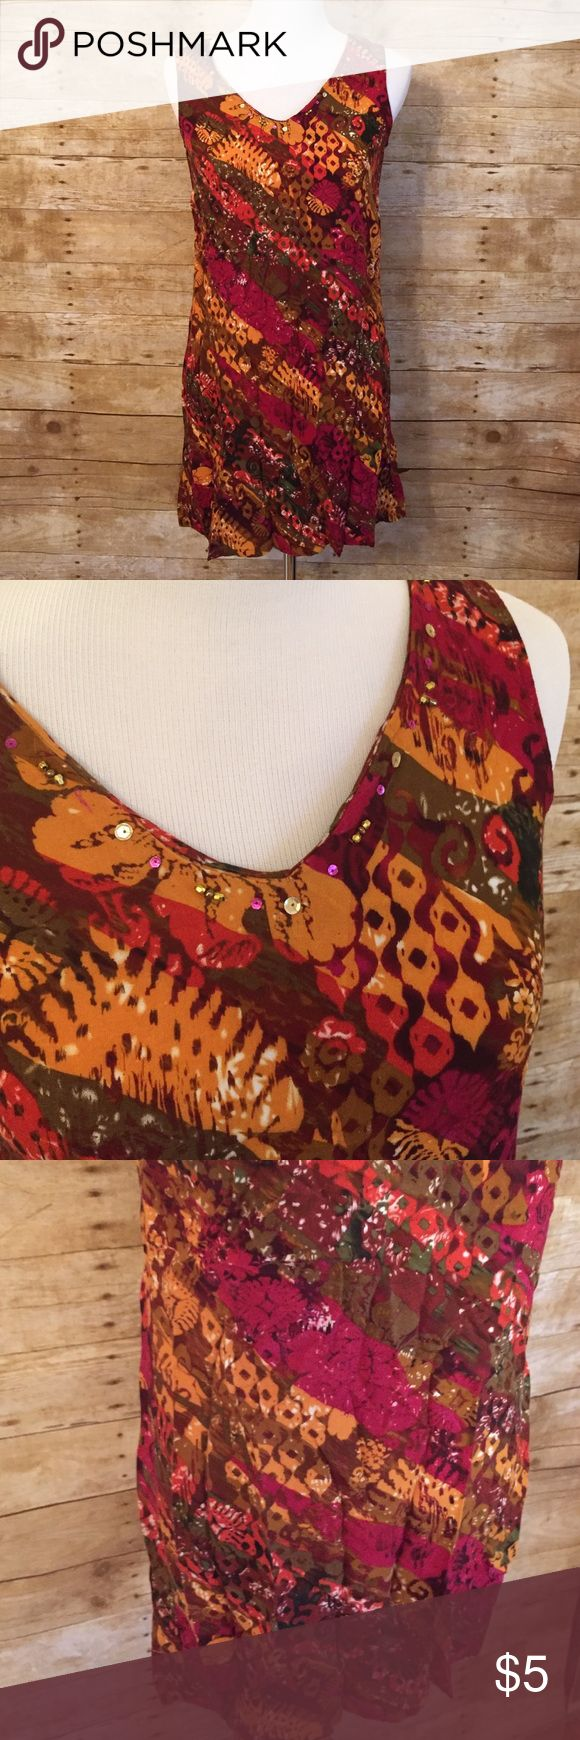 Fall tunic or dress Minor signs of wear. Size 6. Might be a little too short in my opinion for a dress. R&K originals is the brand (A18) r&k originals  Tops Tunics